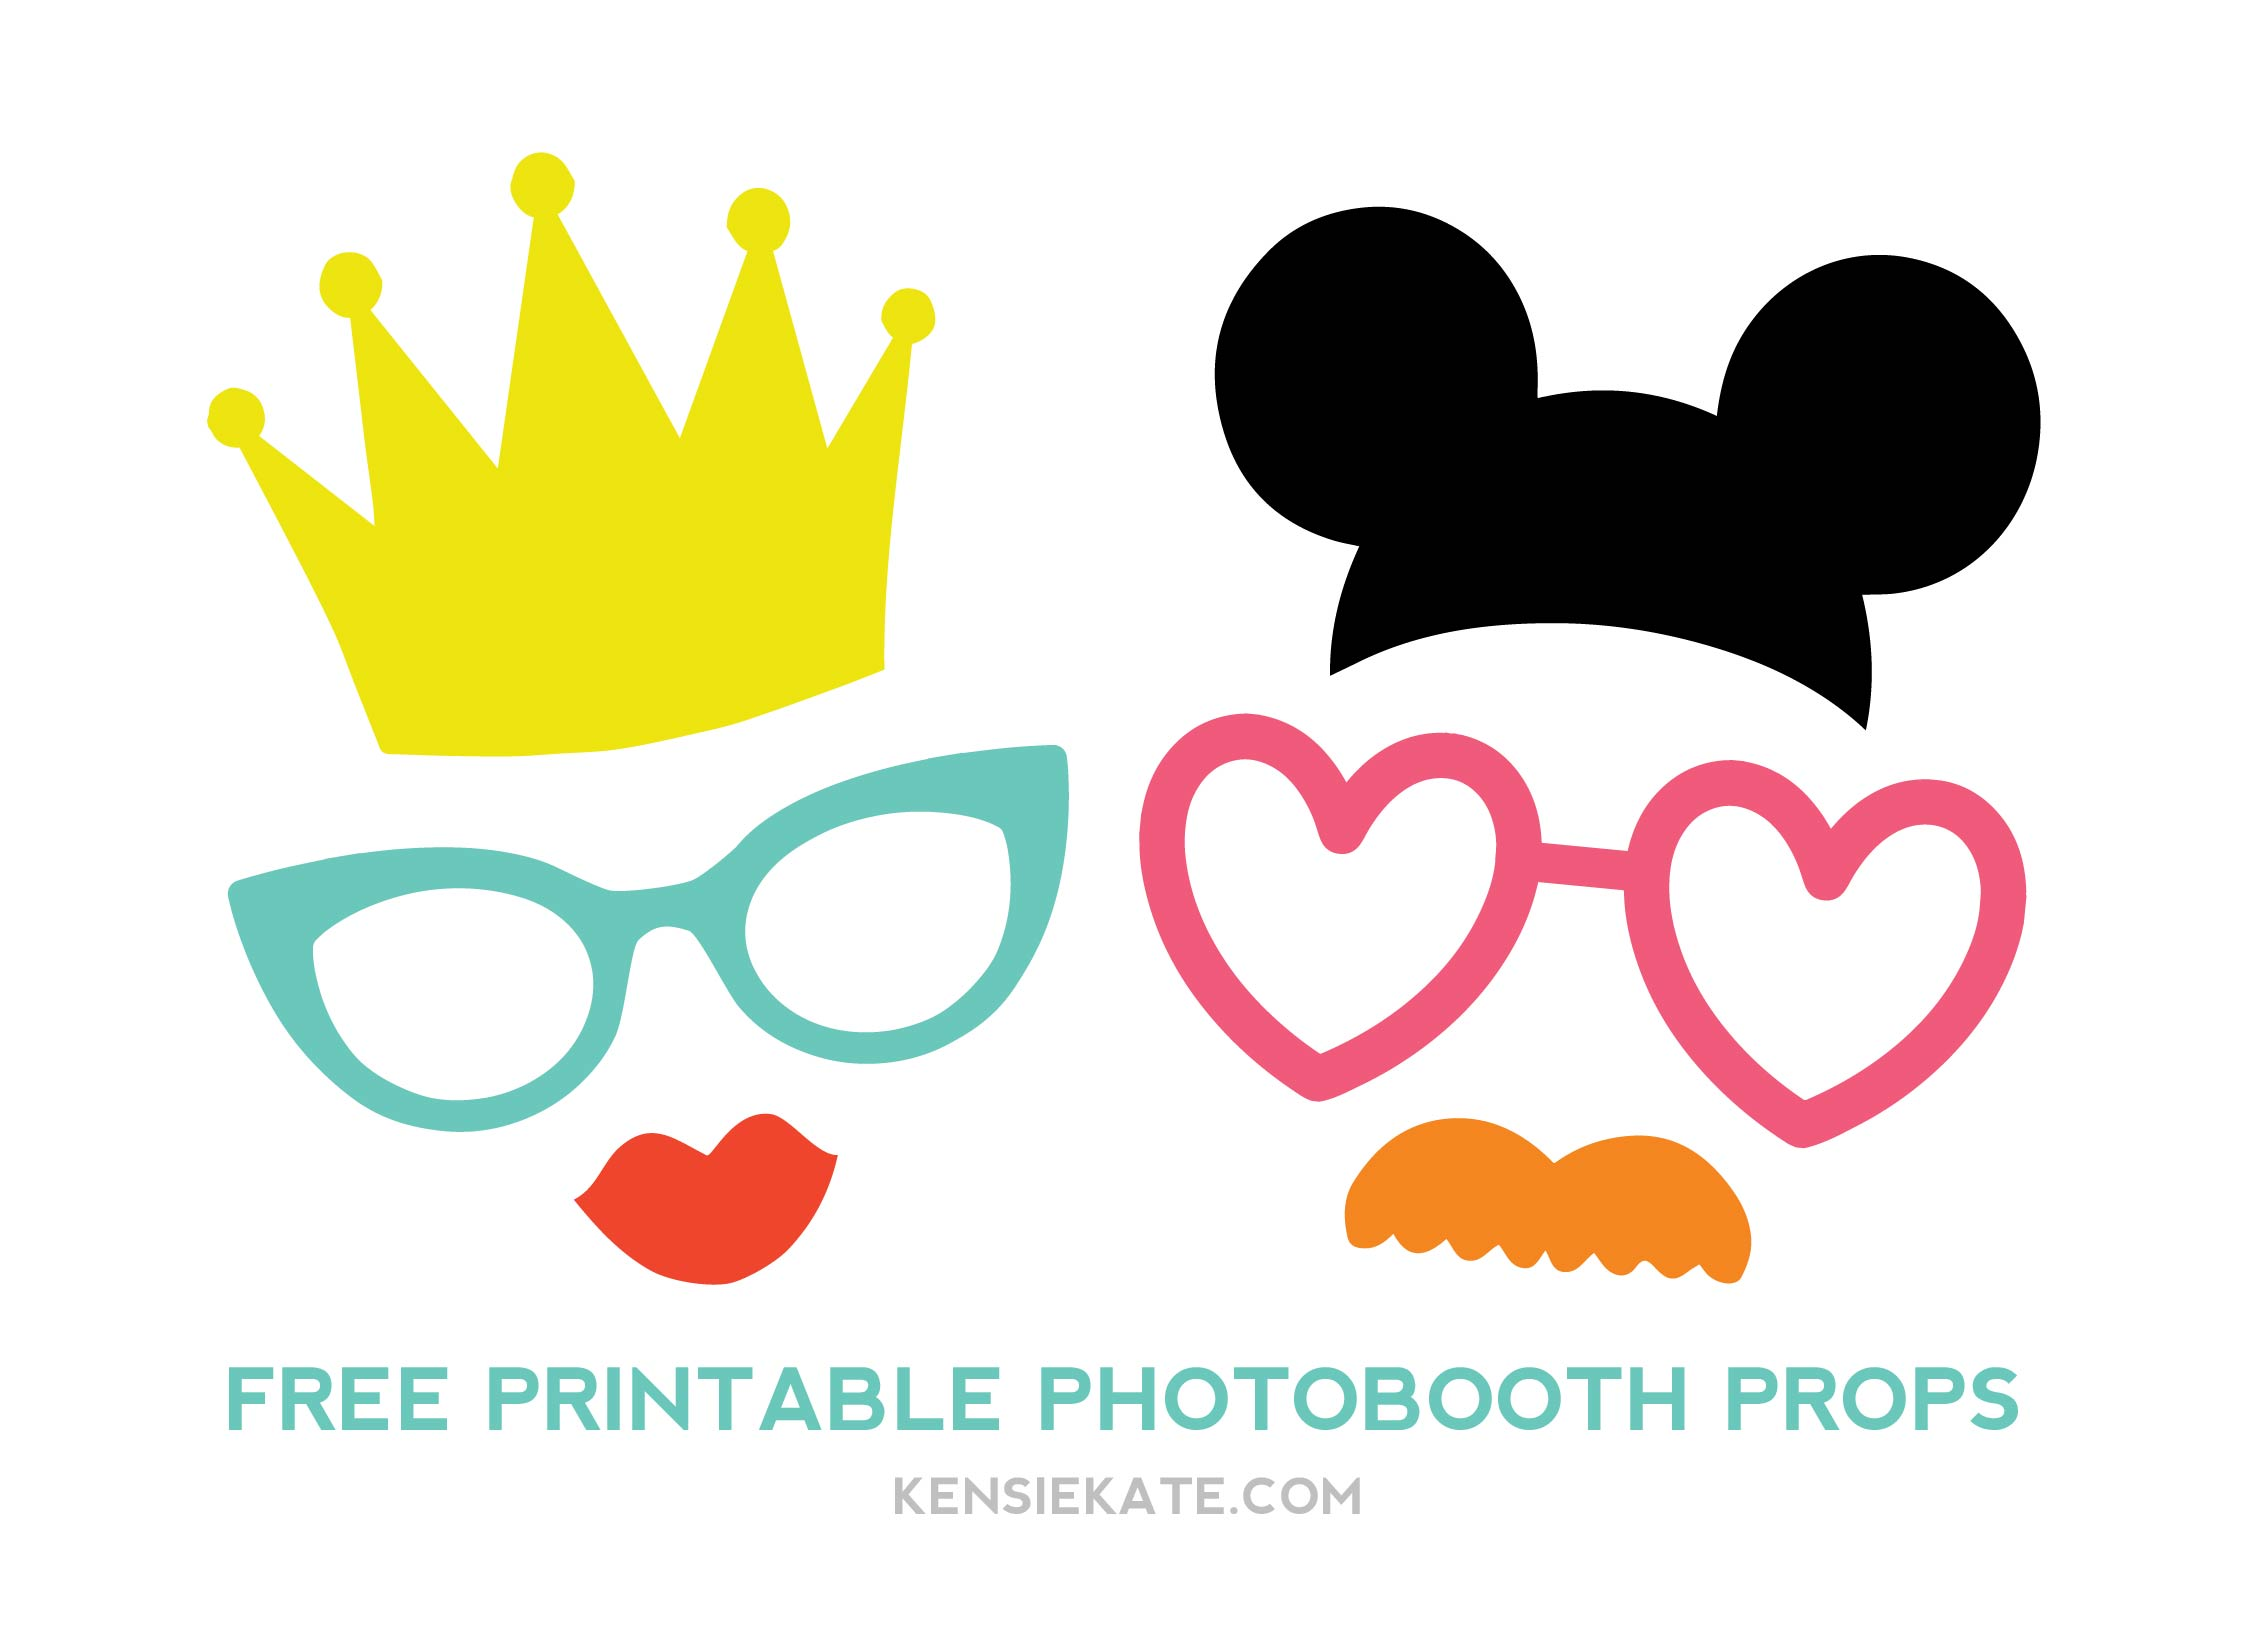 More photobooth props kensie kate for Photo booth props template free download